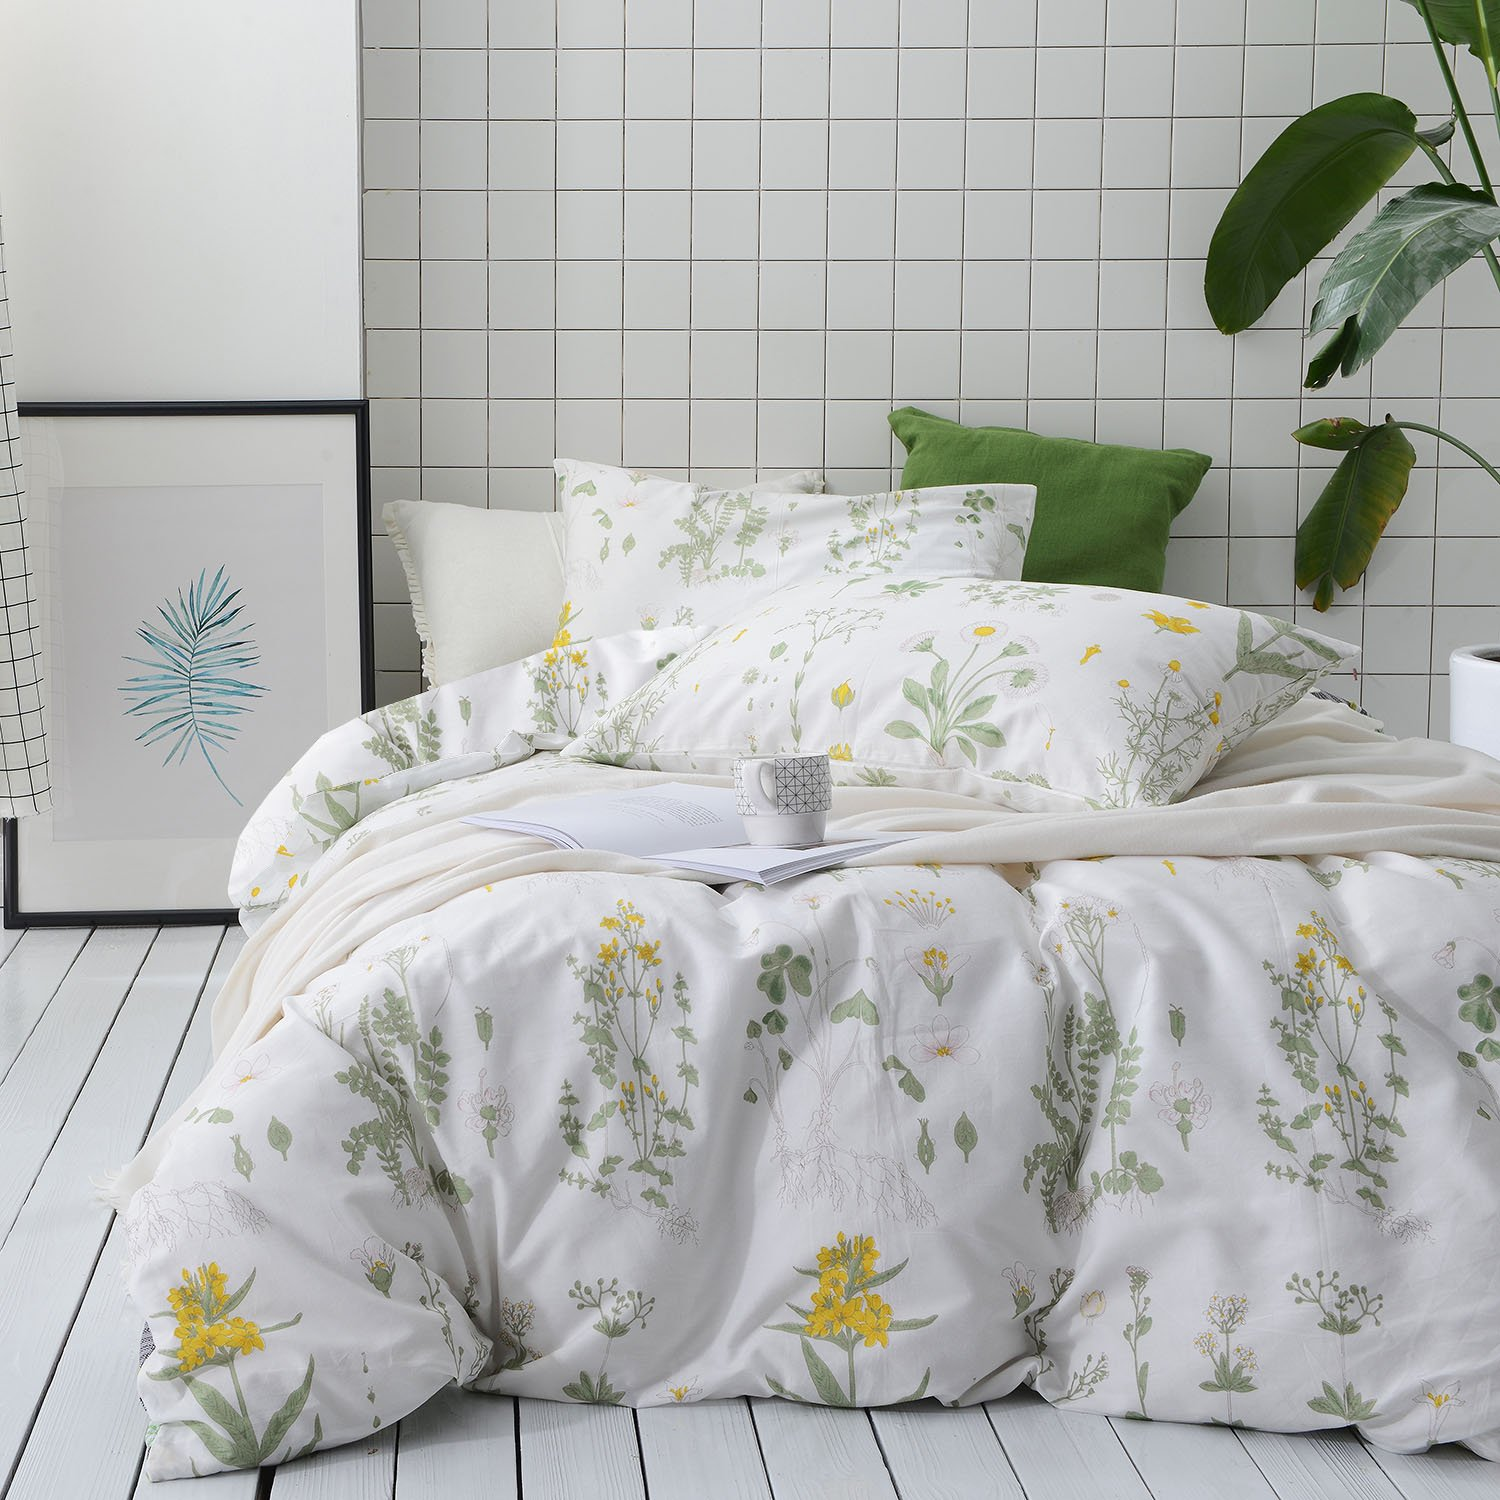 Wake In Cloud - Botanical Comforter Set, 100% Cotton Fabric with Soft Microfiber Fill Bedding, Yellow Flowers and Green Leaves Floral Garden Pattern Printed on White (3pcs, Queen Size)